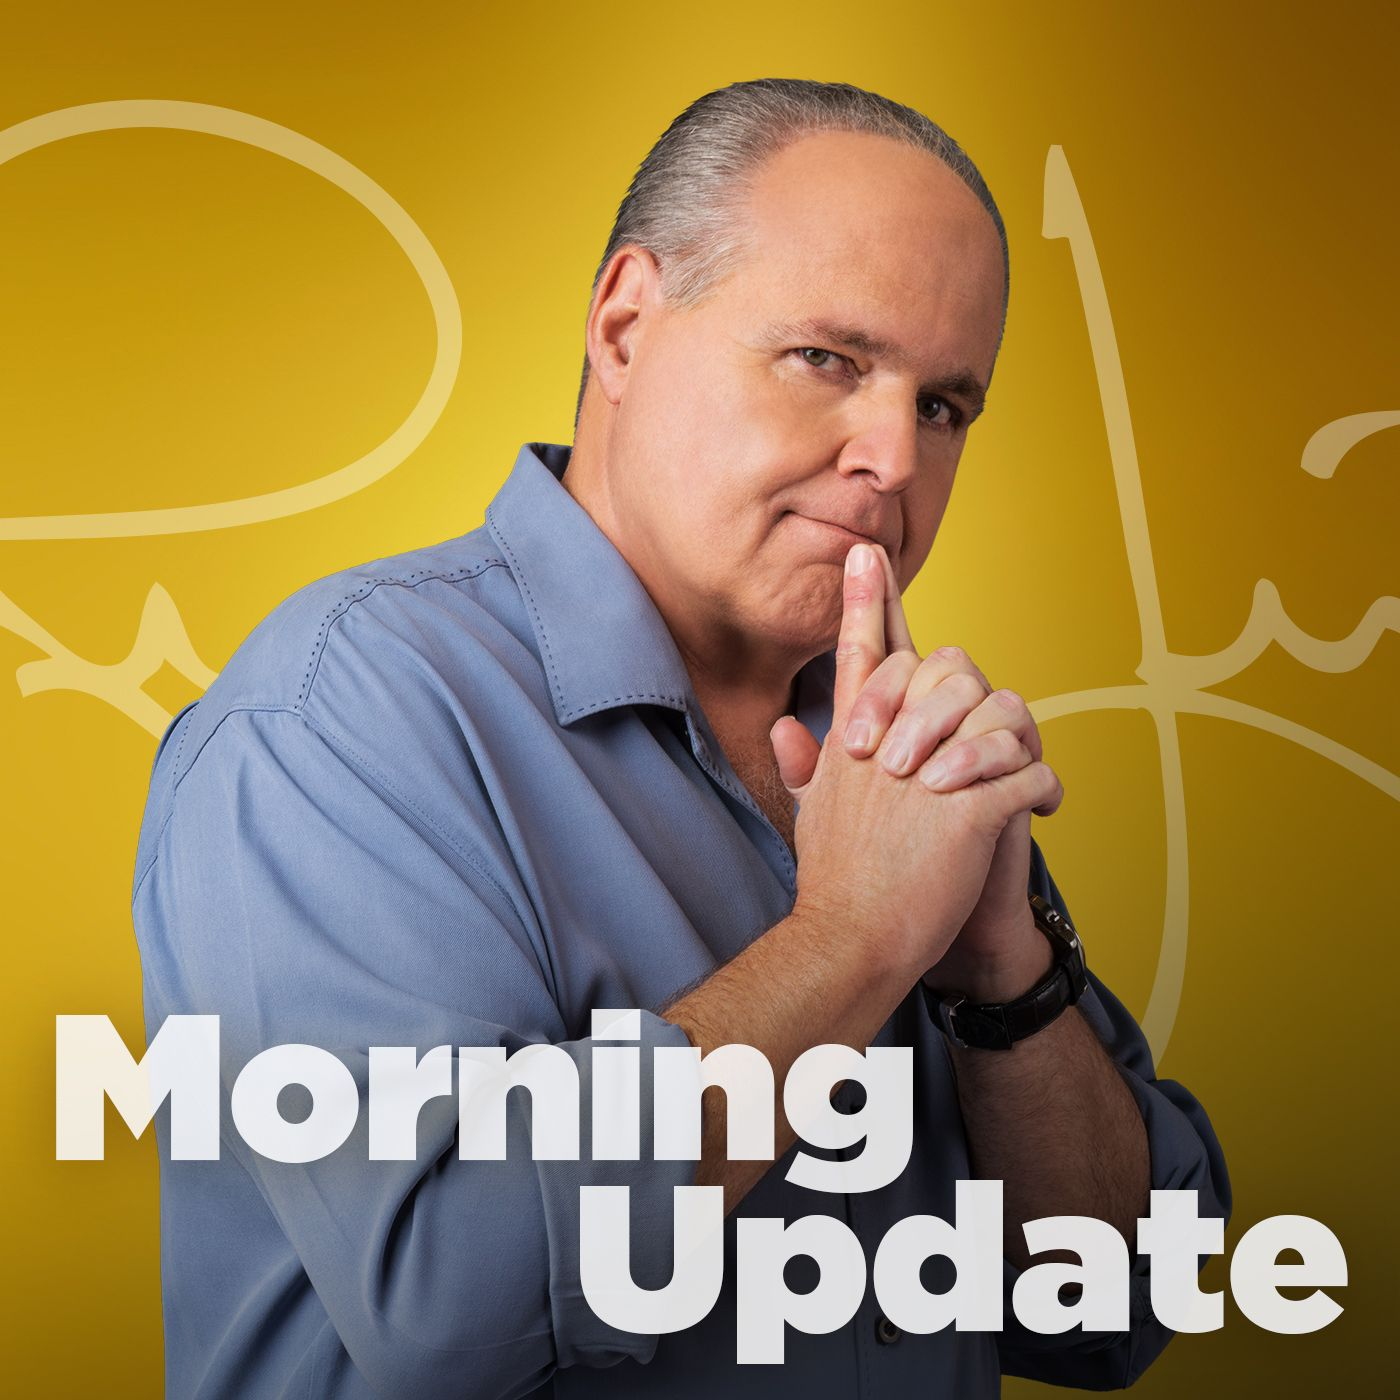 Rush Limbaugh Jan 31, 2020